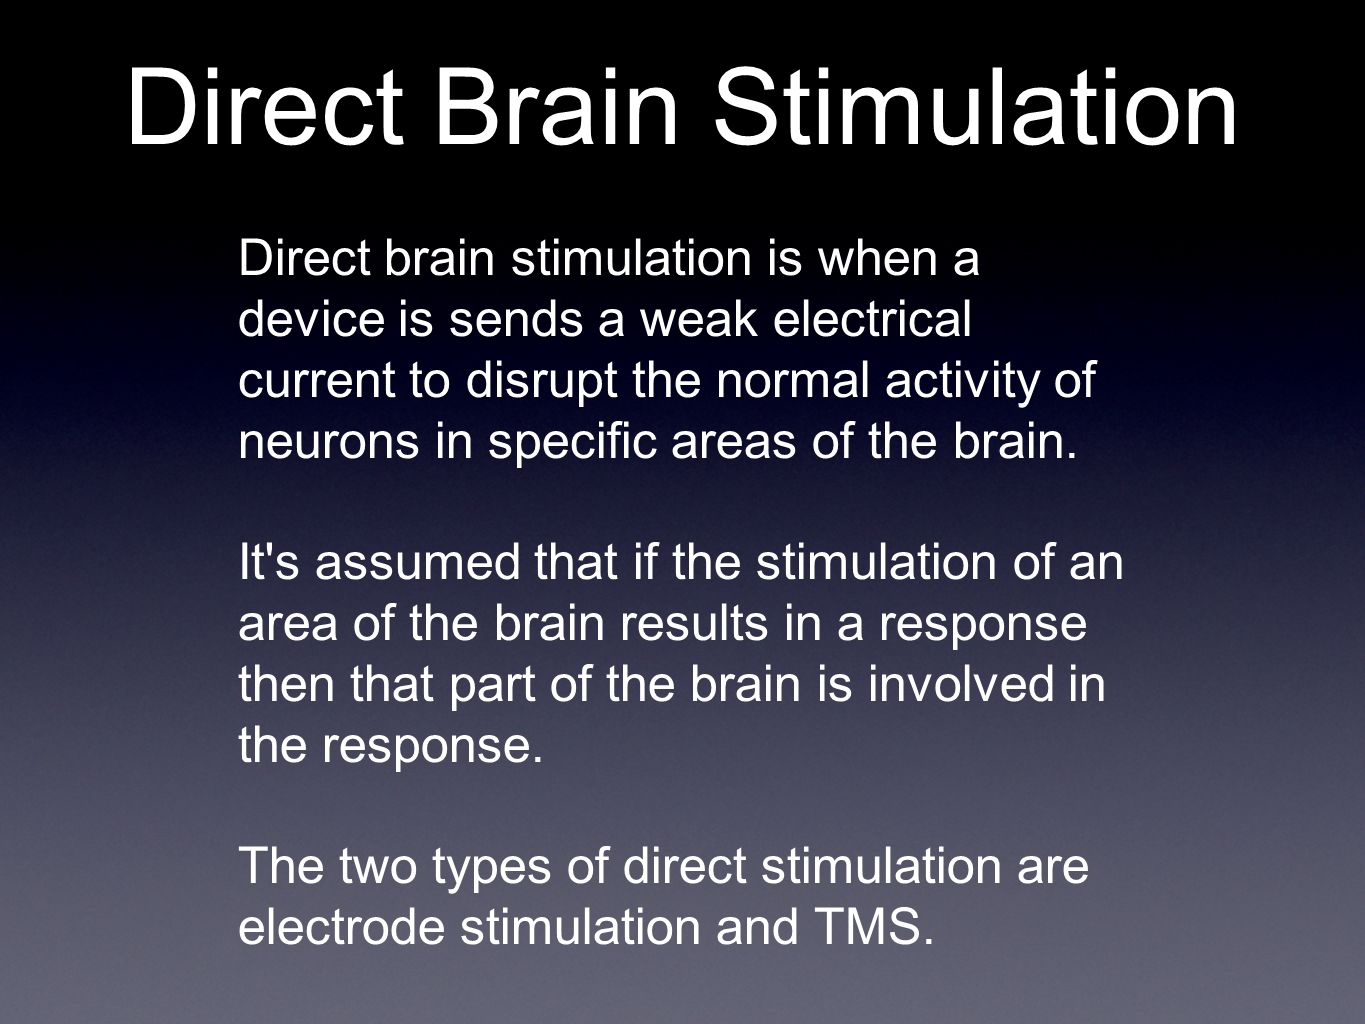 Direct Brain Stimulation Direct brain stimulation is when a device is sends a weak electrical current to disrupt the normal activity of neurons in specific areas of the brain.